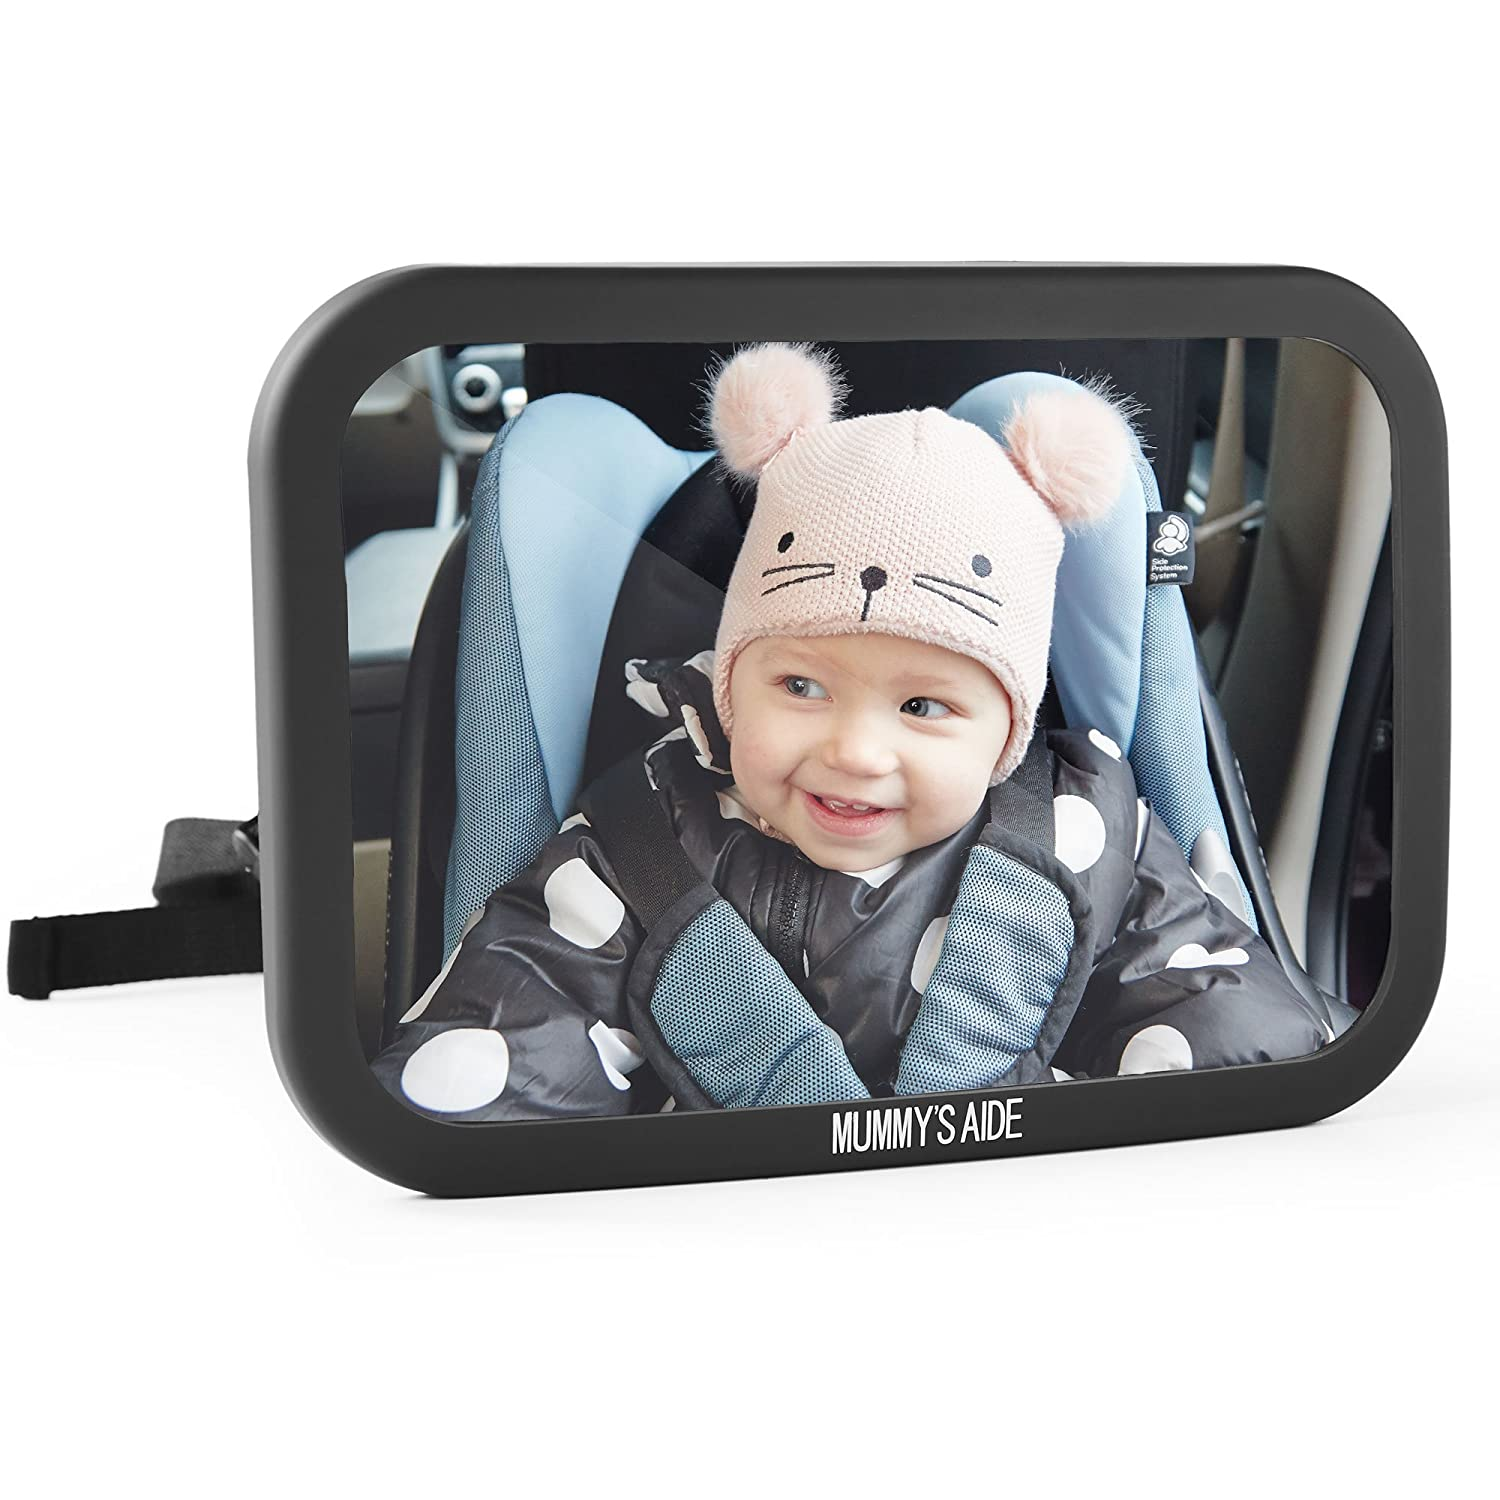 Baby Car Mirror/Baby Backseat Mirror for Car/Adjustable Safety Mirror - Clear Rear View Mummy's Aide YBD170811